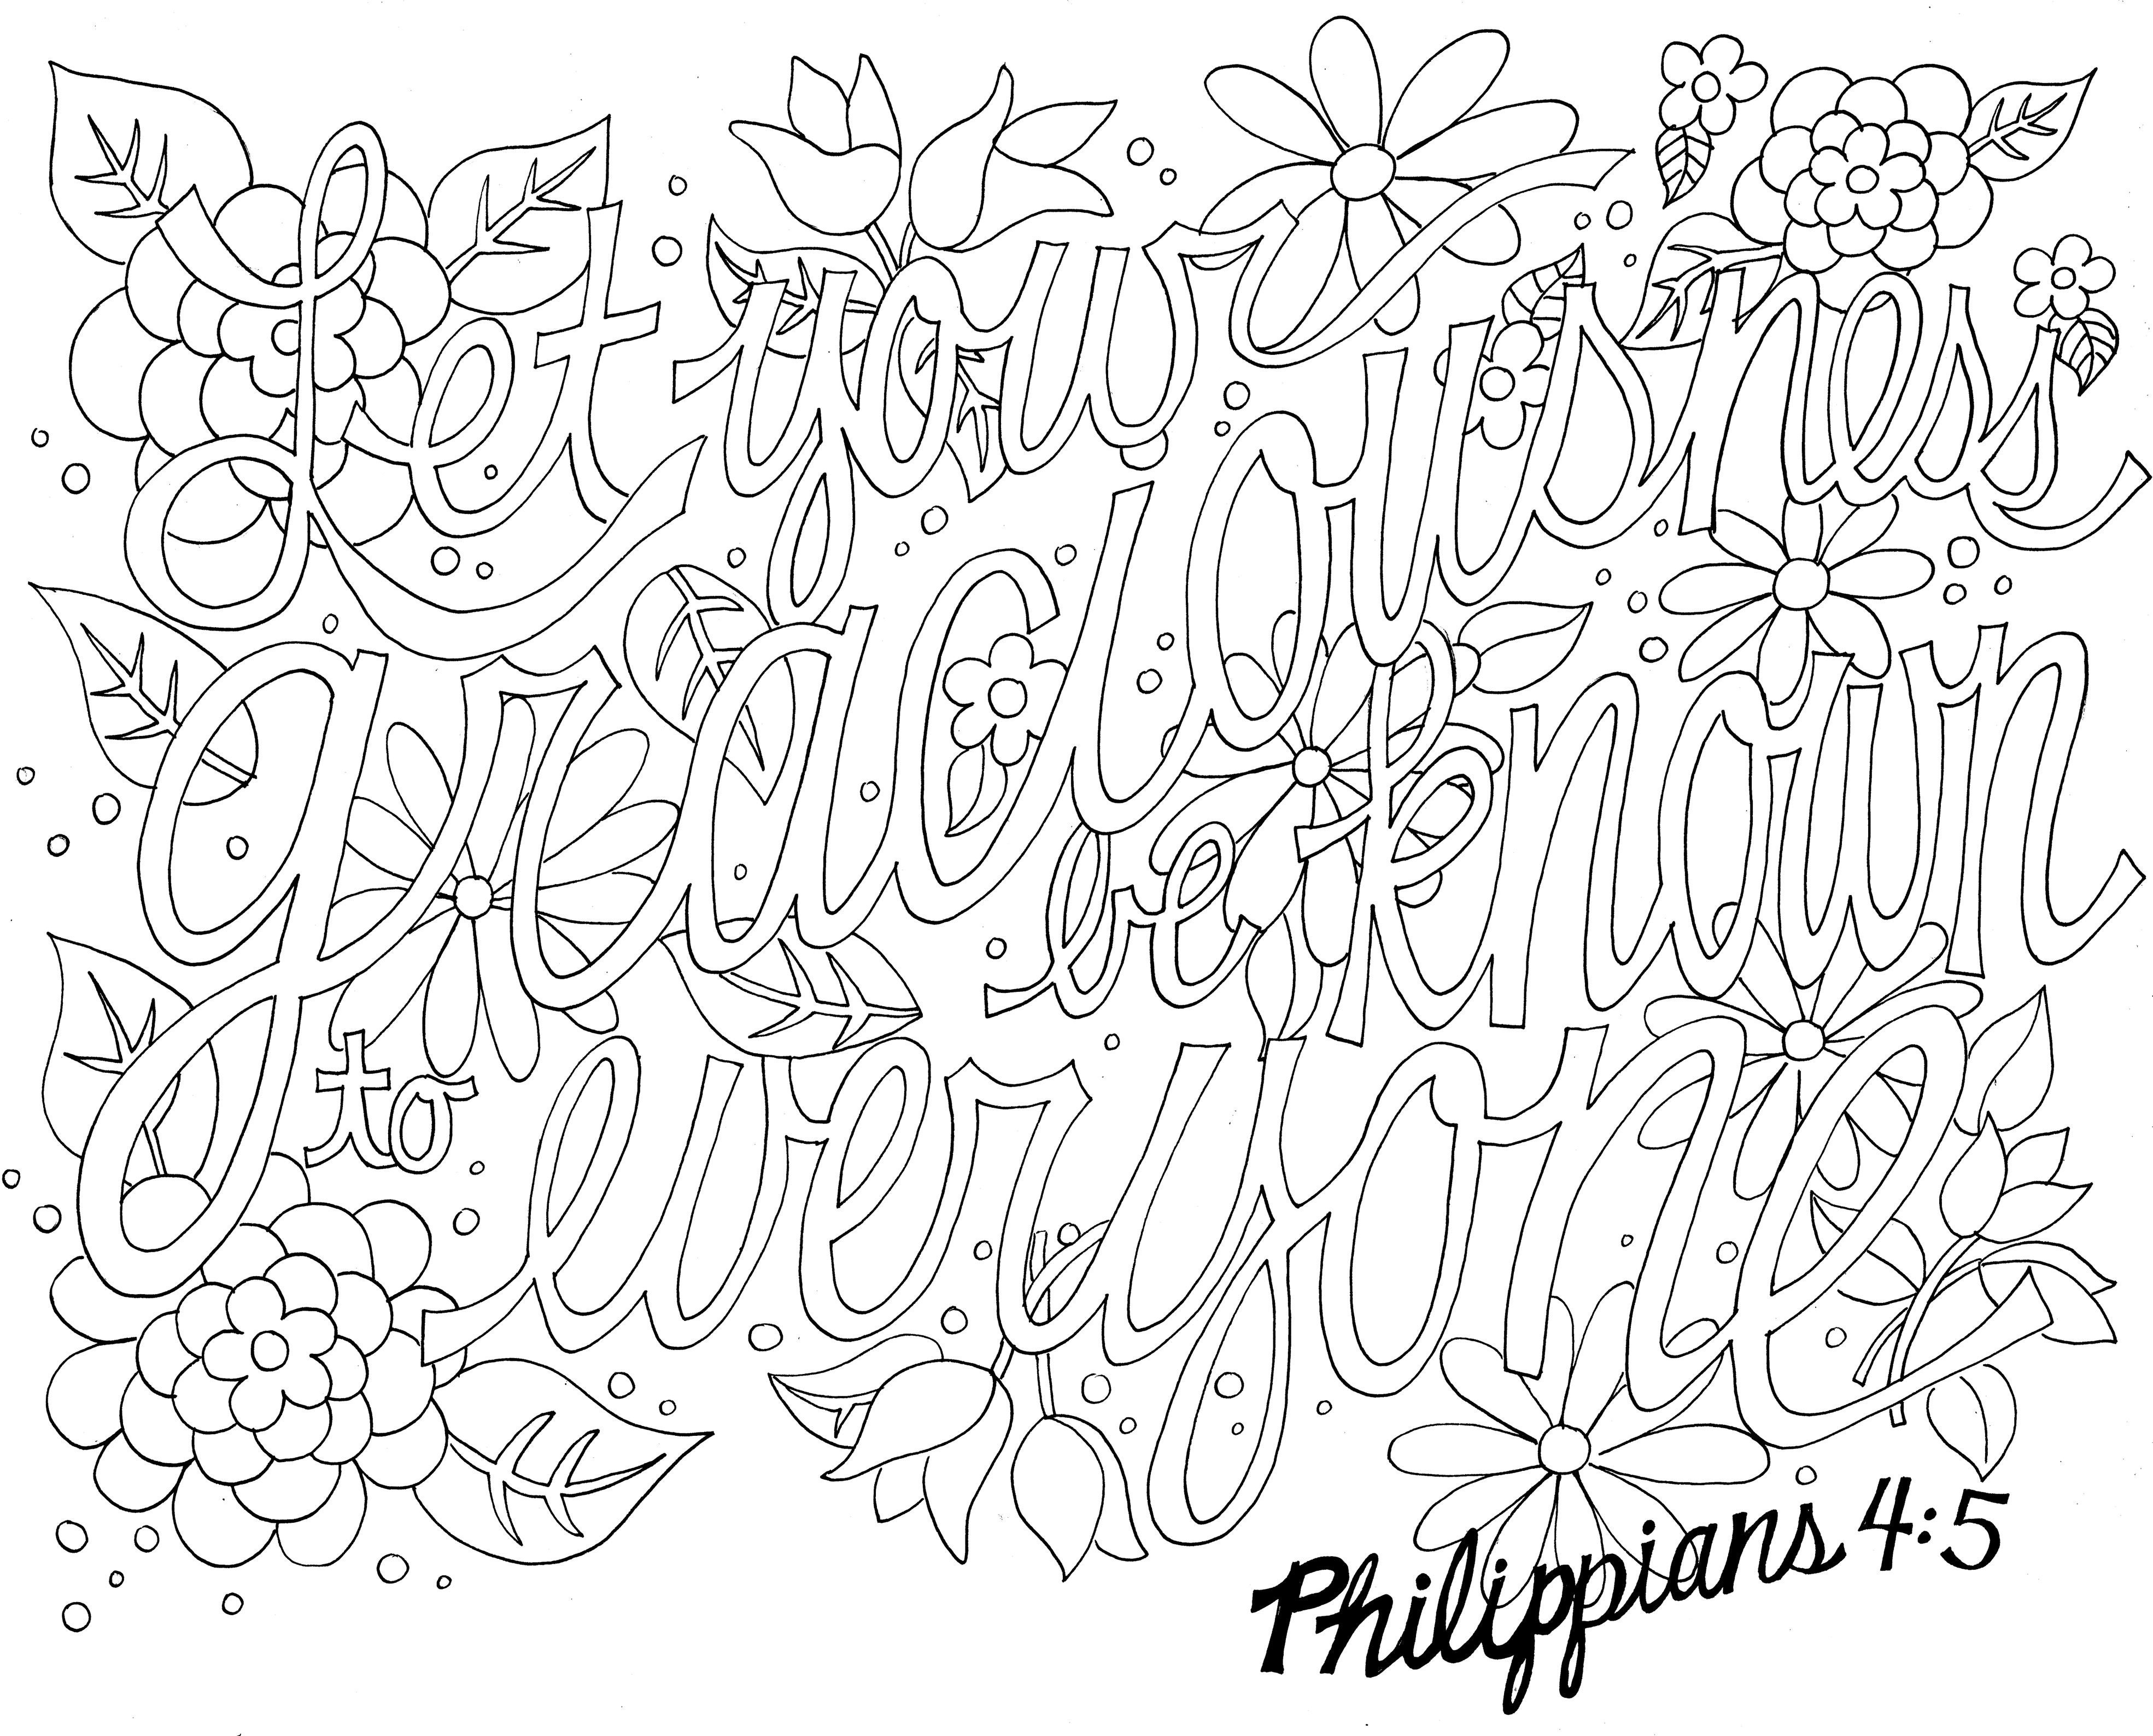 Coloring Pages : Coloring Pages Printable Bible With Verses For - Free Printable Bible Verses Adults